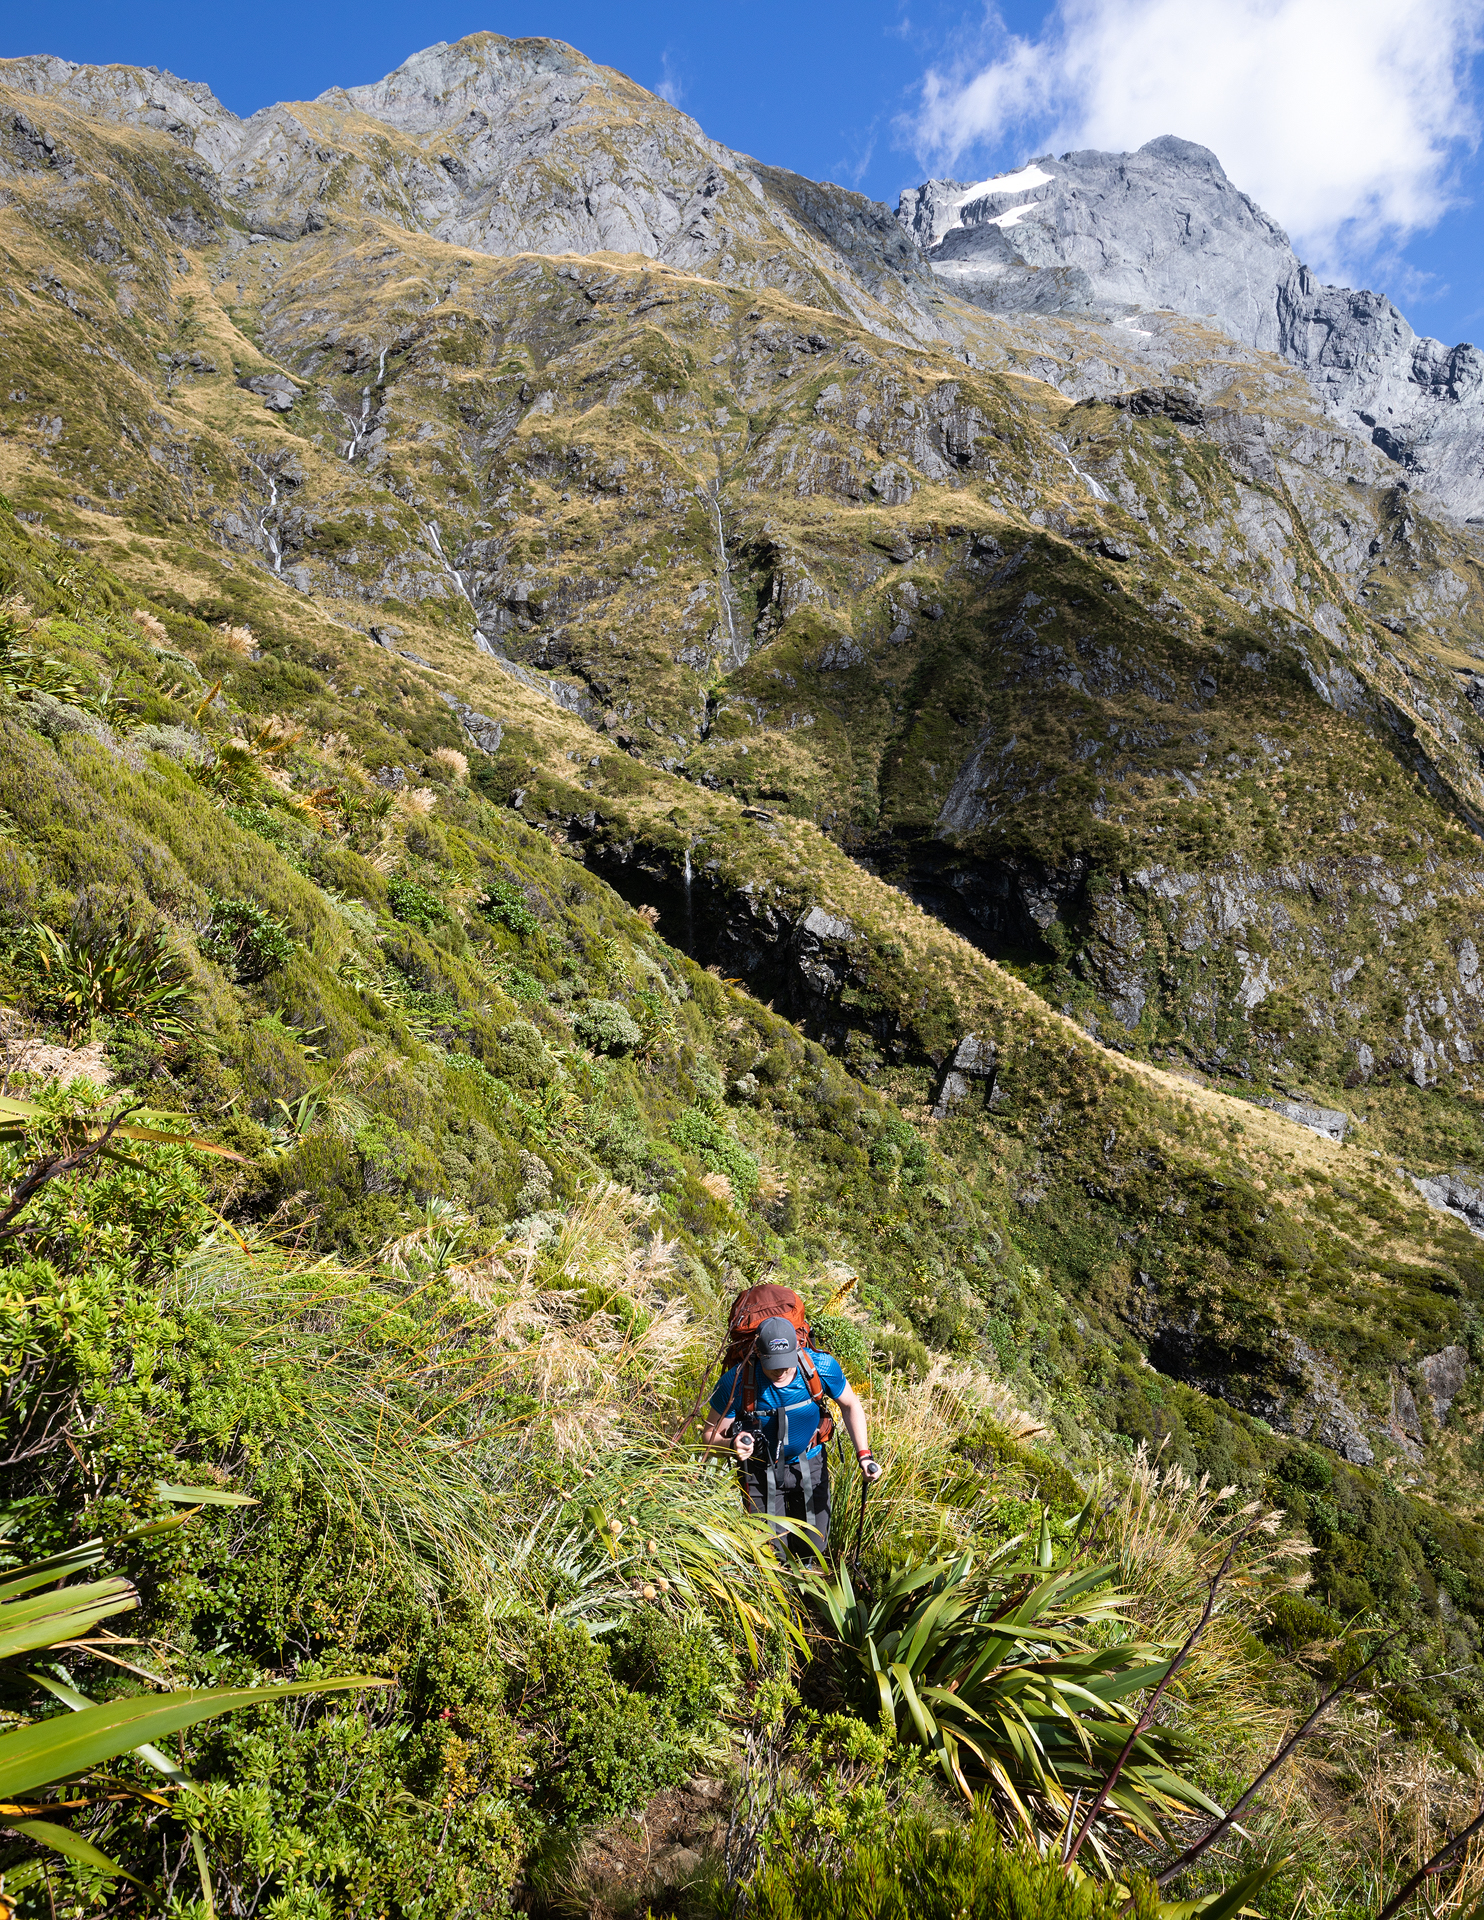 Heading up the steep trail toward Gillespie Pass